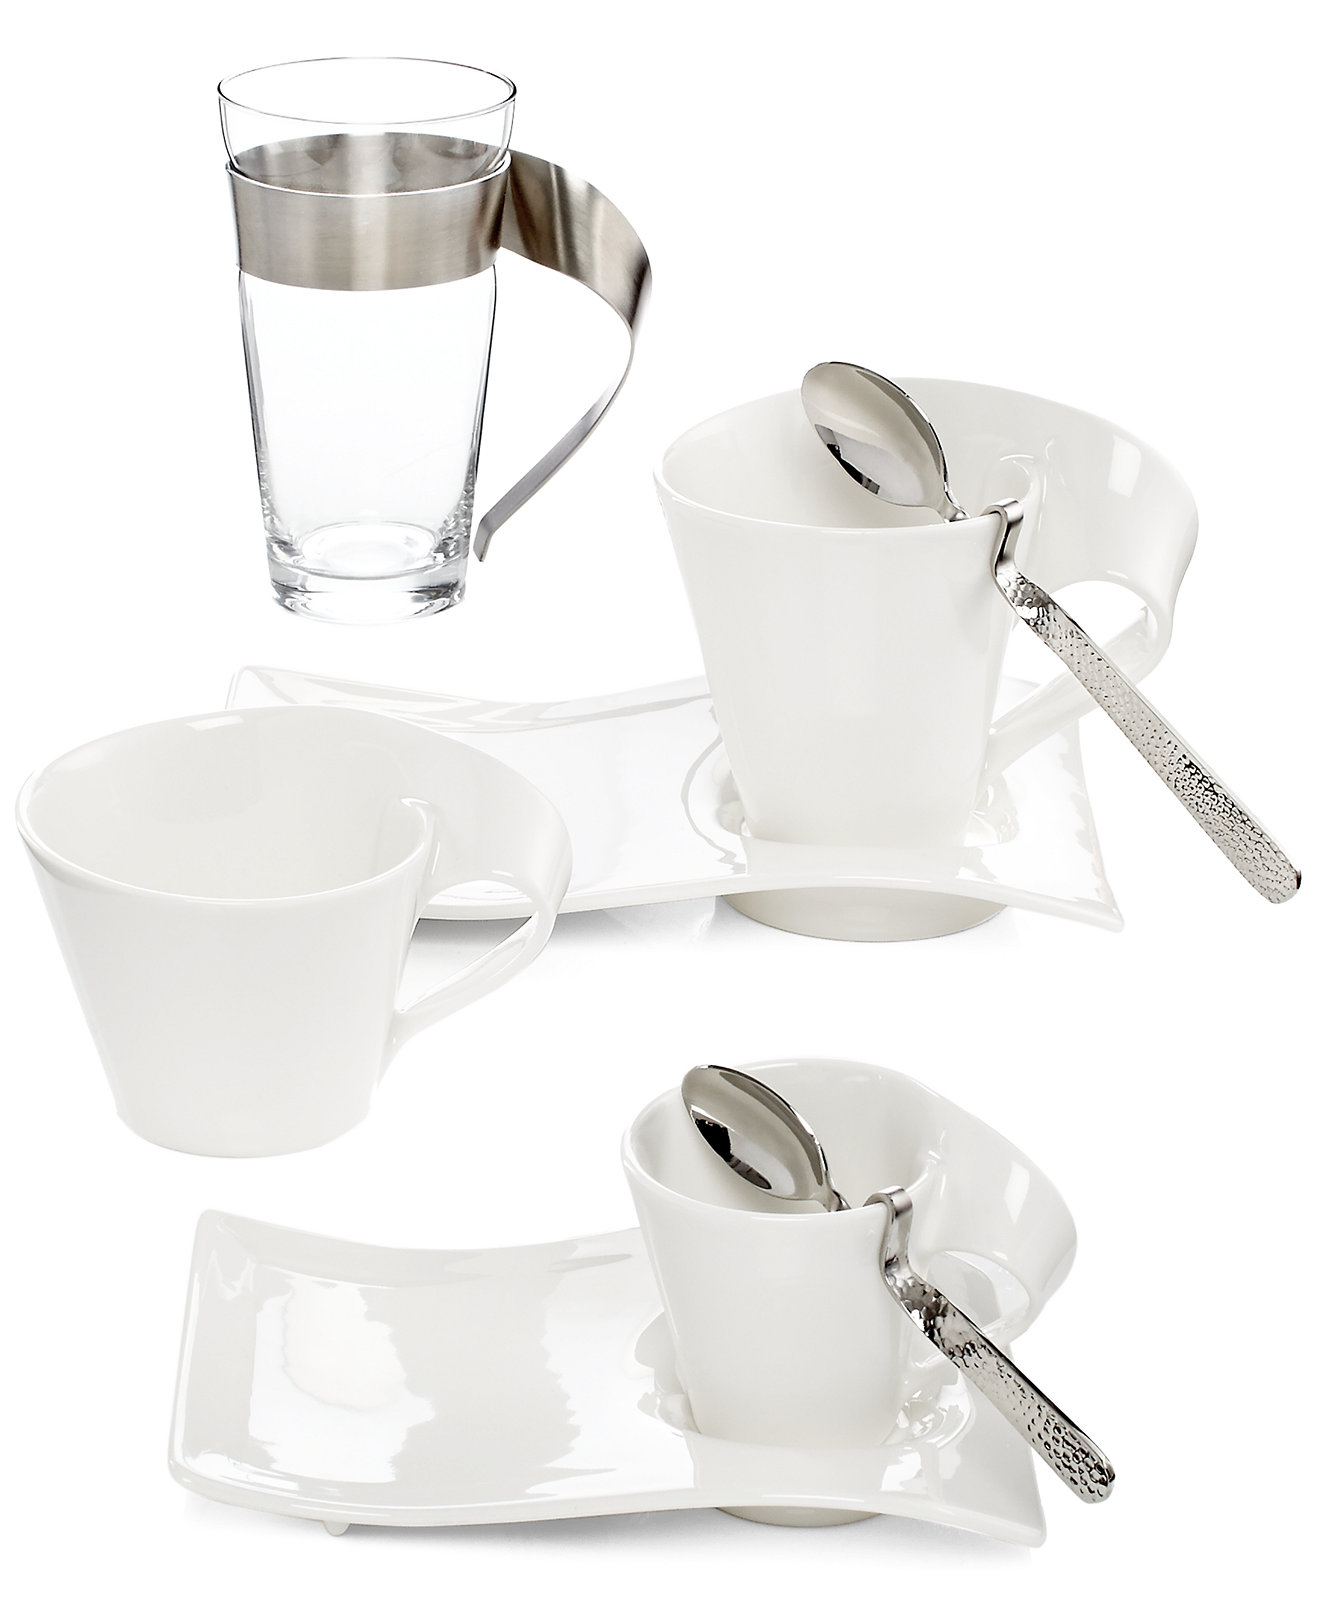 Villeroy and boch new wave set - Larger View